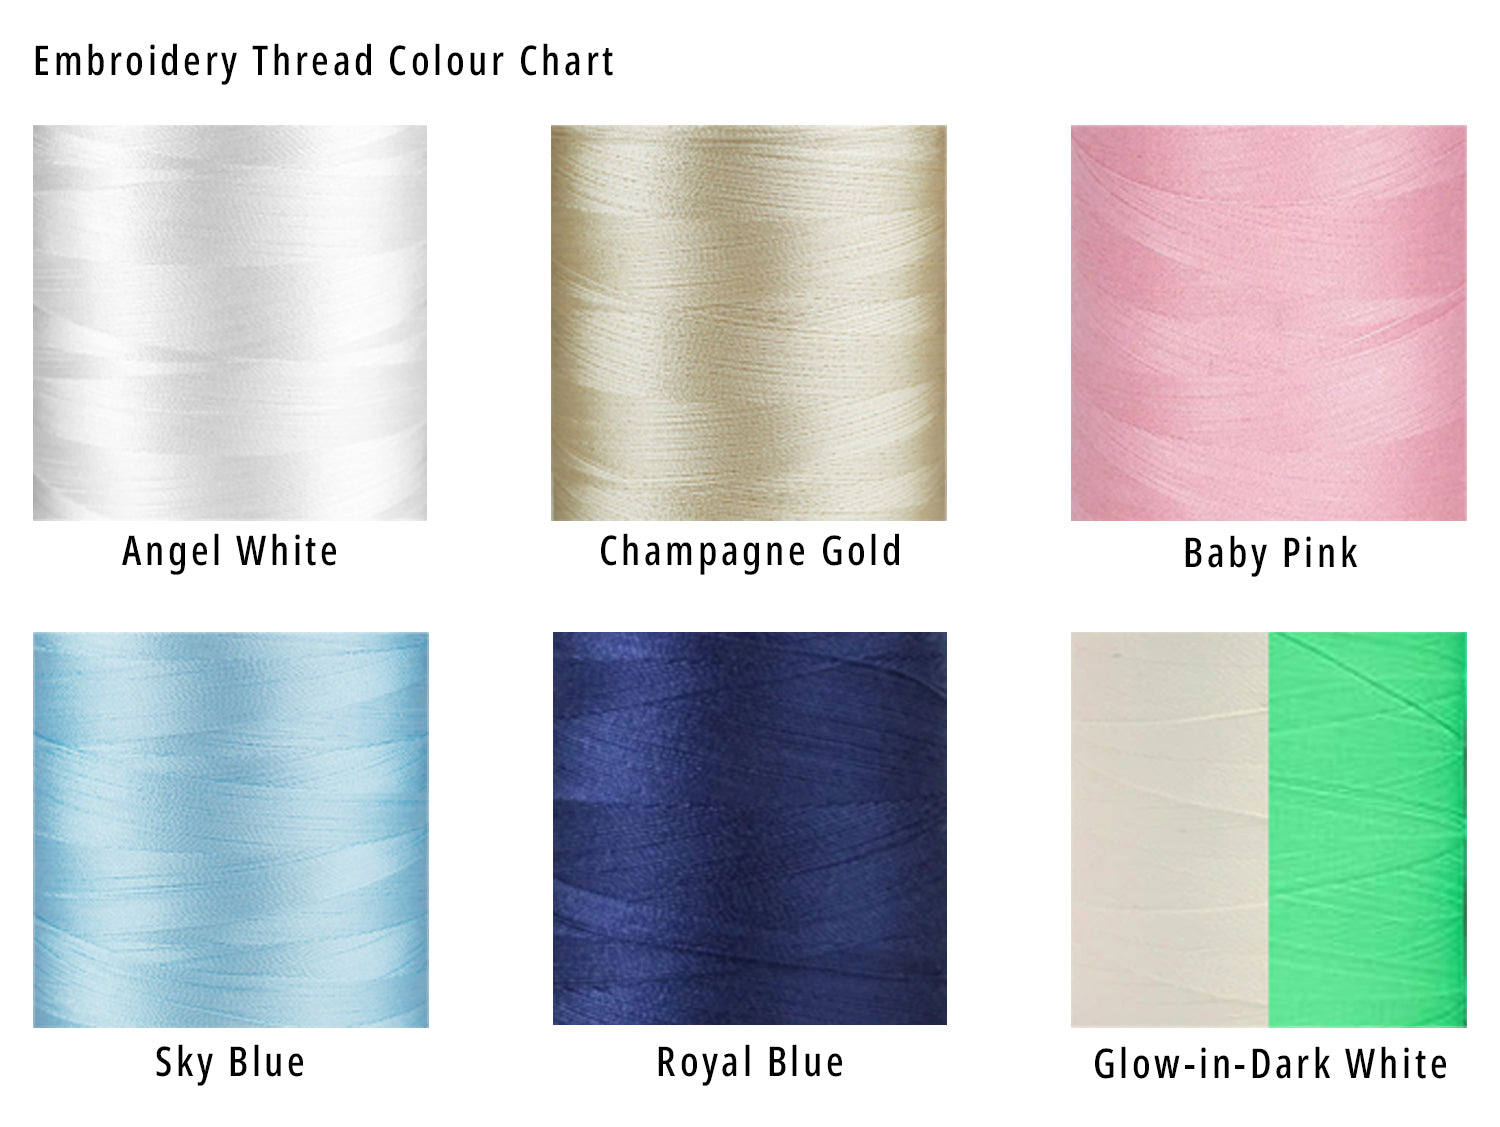 puttot embroidery thread colour chart